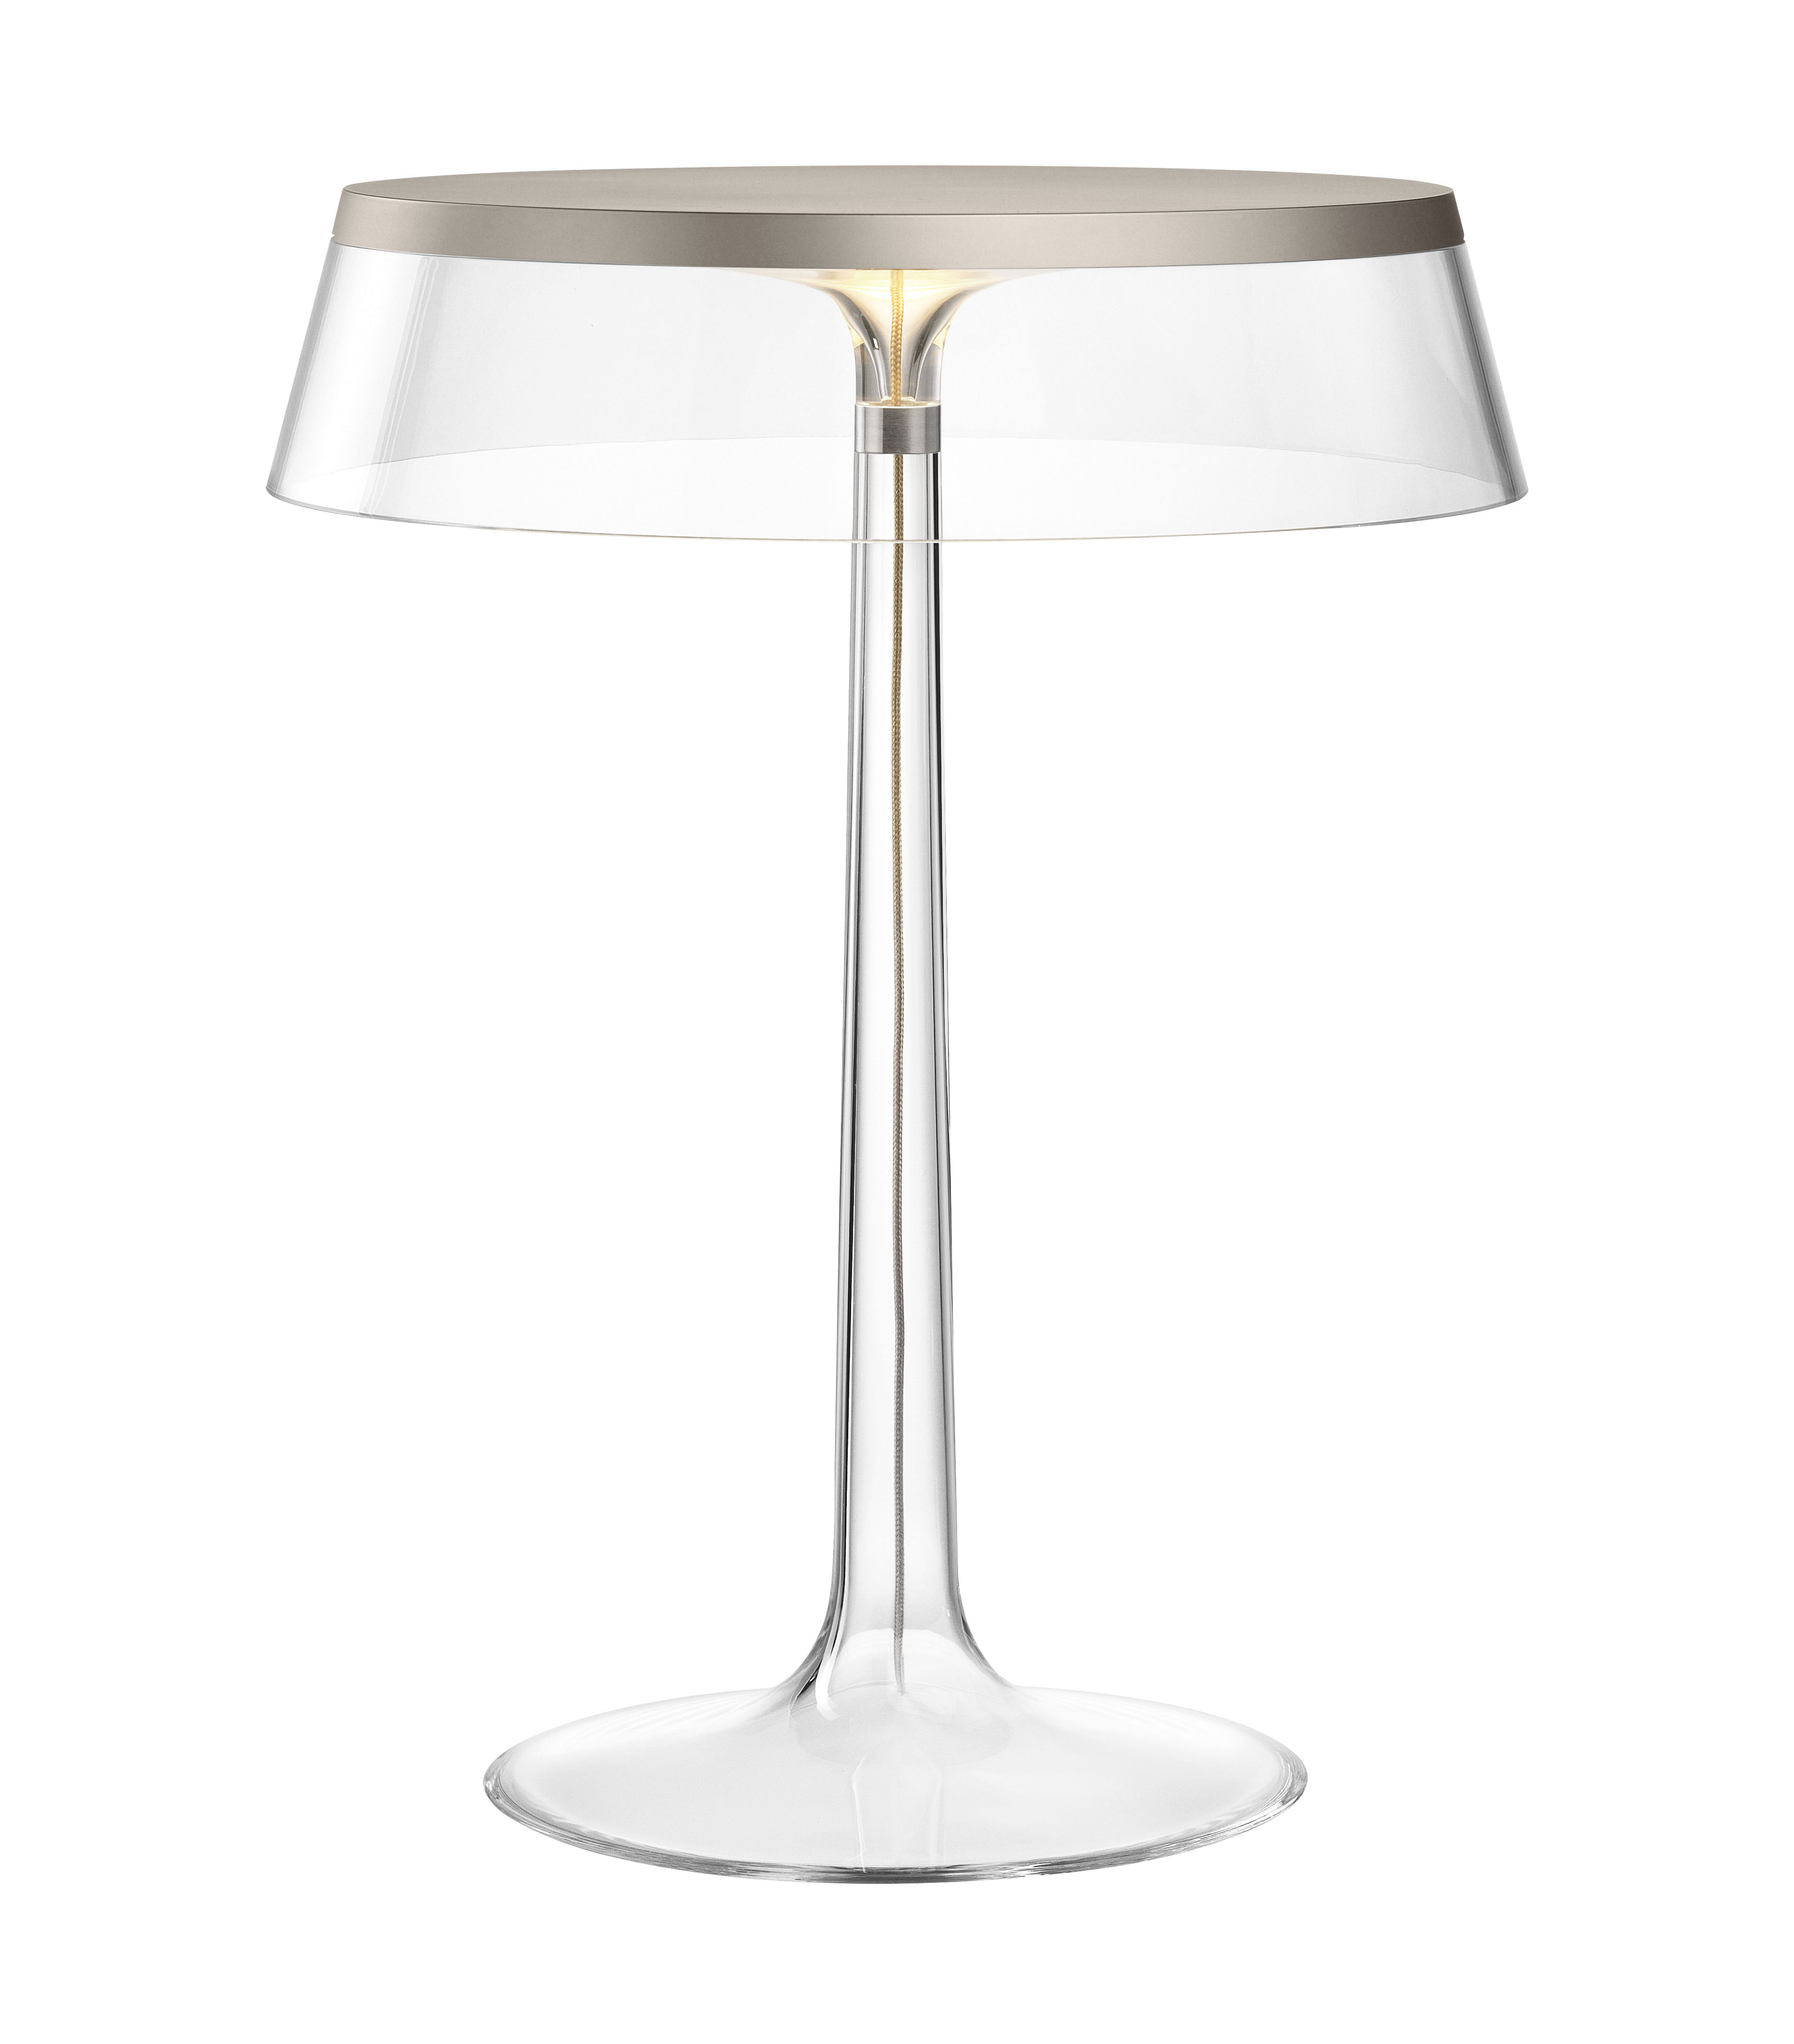 Lighting - Table Lamps - Bon Jour Table lamp - LED  / H 41 cm by Flos - Satined metal / Transparent - PMMA